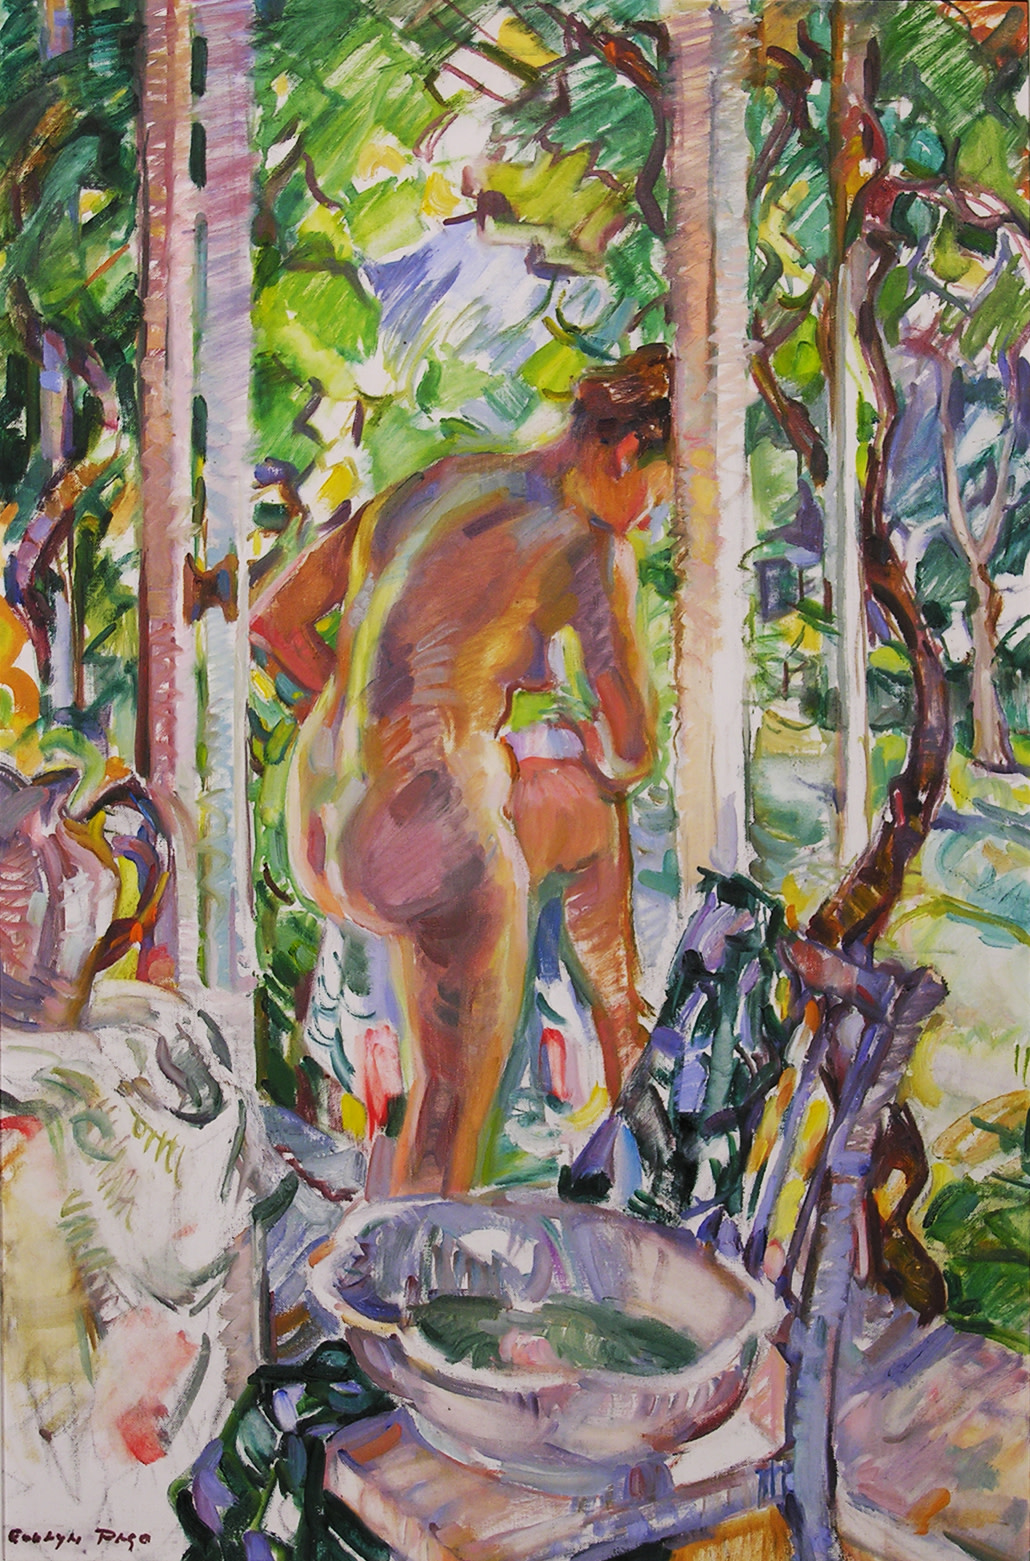 <span class=&#34;link fancybox-details-link&#34;><a href=&#34;/artists/80-evelyn-page/works/3035-evelyn-page-nude-in-a-doorway-1974/&#34;>View Detail Page</a></span><div class=&#34;artist&#34;><strong>Evelyn Page</strong></div> <div class=&#34;title&#34;><em>Nude in a Doorway</em>, 1974</div> <div class=&#34;signed_and_dated&#34;>Signed lower left 'Evelyn Page'</div> <div class=&#34;medium&#34;>Oil on canvas board</div> <div class=&#34;dimensions&#34;>23.6 x 16.1 in<br />60 x 41 cm</div>